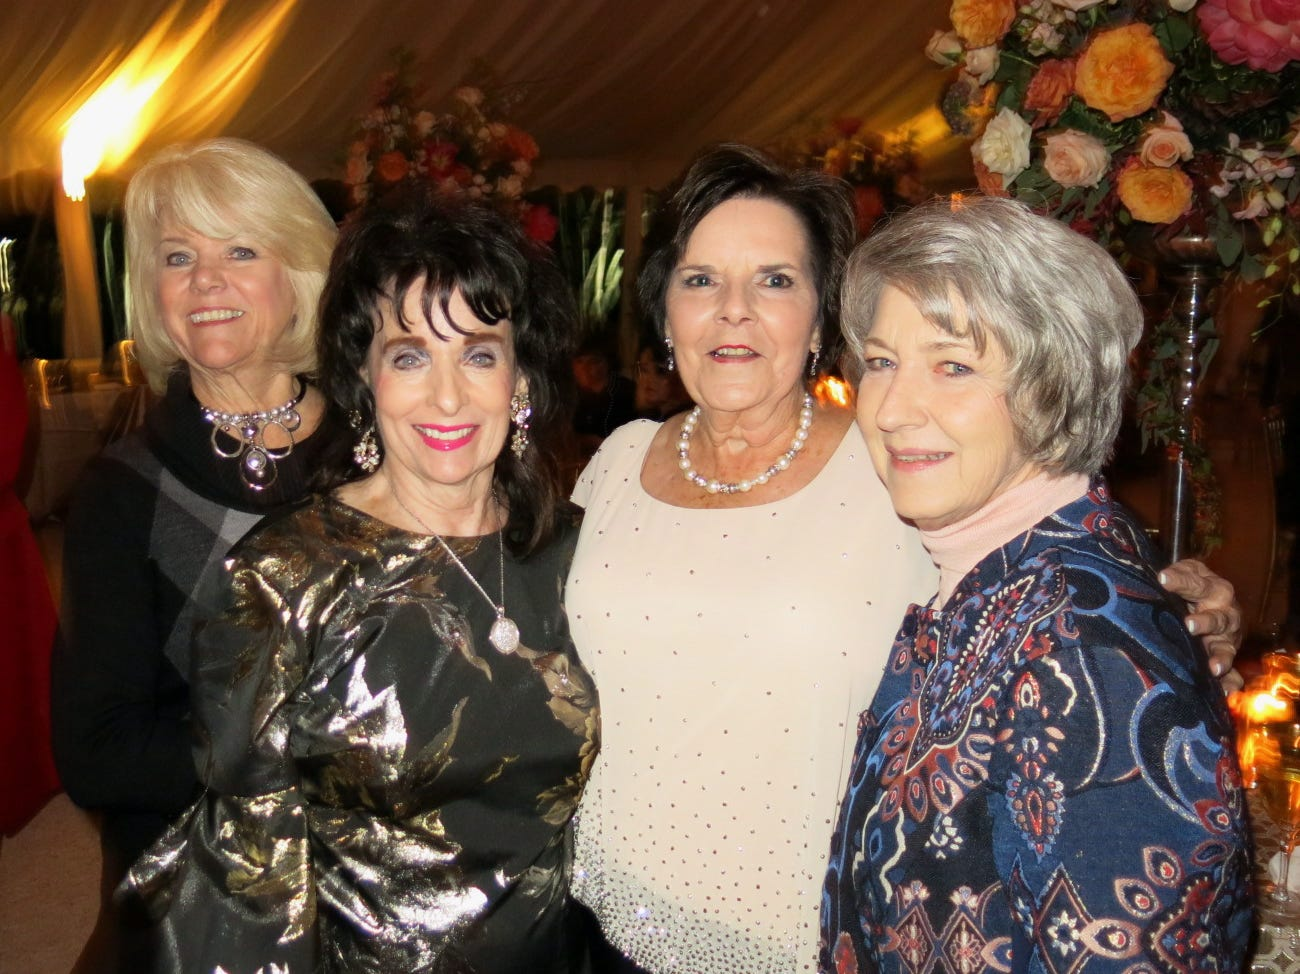 The wedding reception for Thomas L. Lester and Kimberly M. Biagini was Nov. 3 at Ed Lester's Cabin Point Plantation, Coushatta.